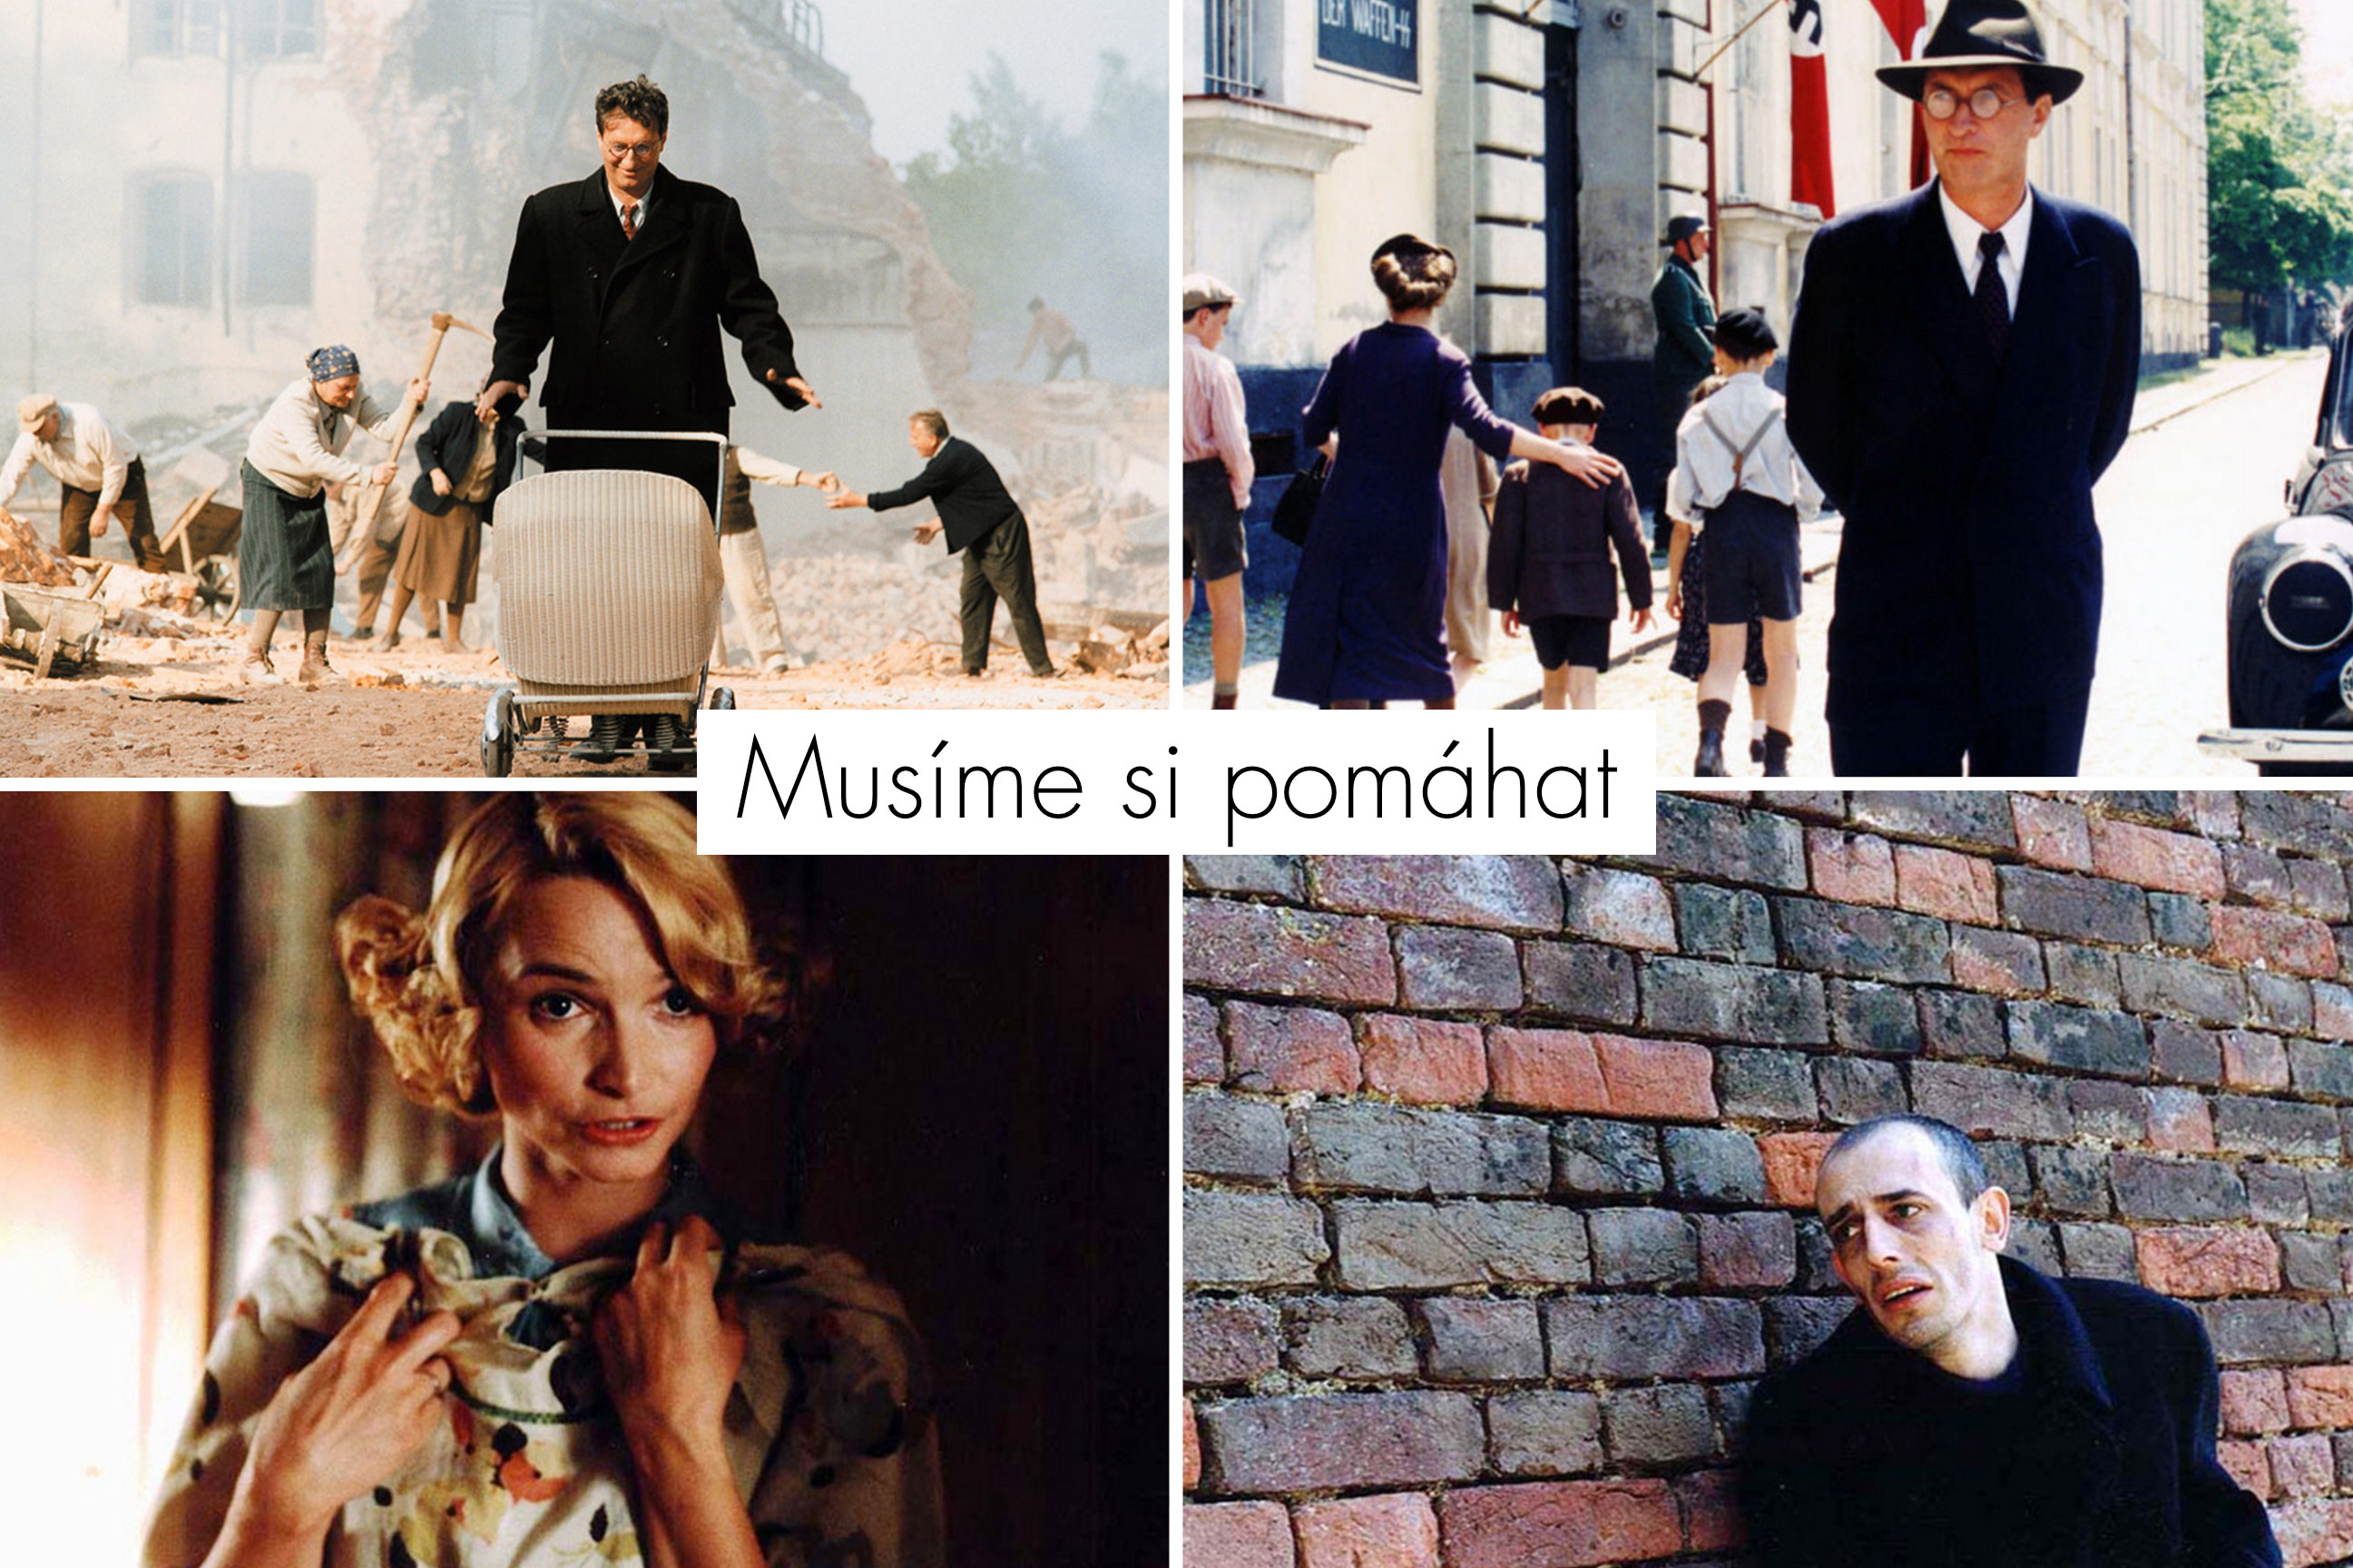 musime si pomahat